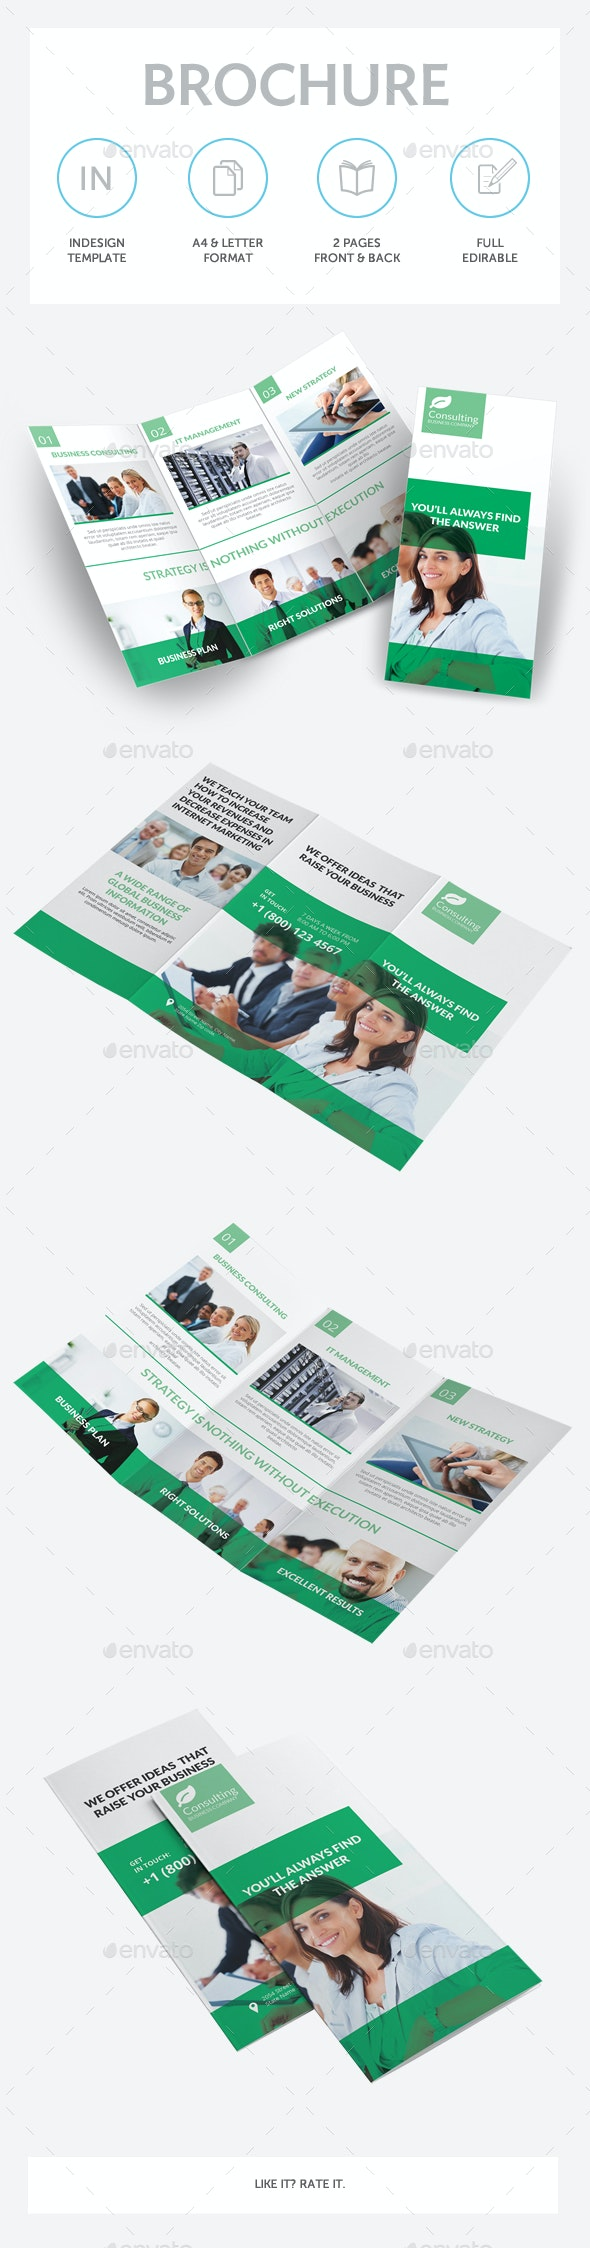 Consulting Services Trifold Brochure - Corporate Brochures